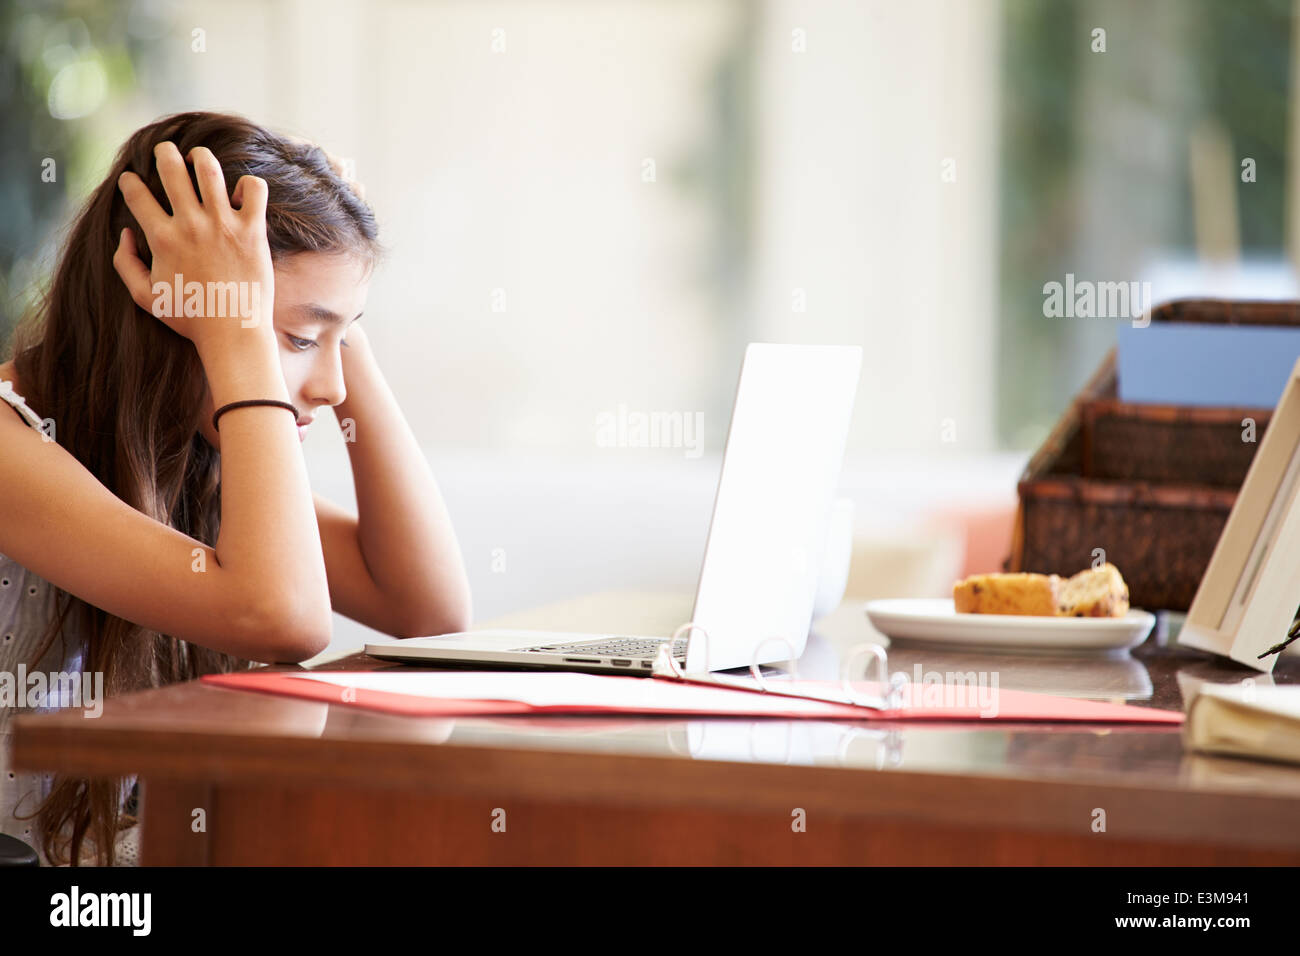 Stressed Teenage Girl Using Laptop On Desk At Home - Stock Image